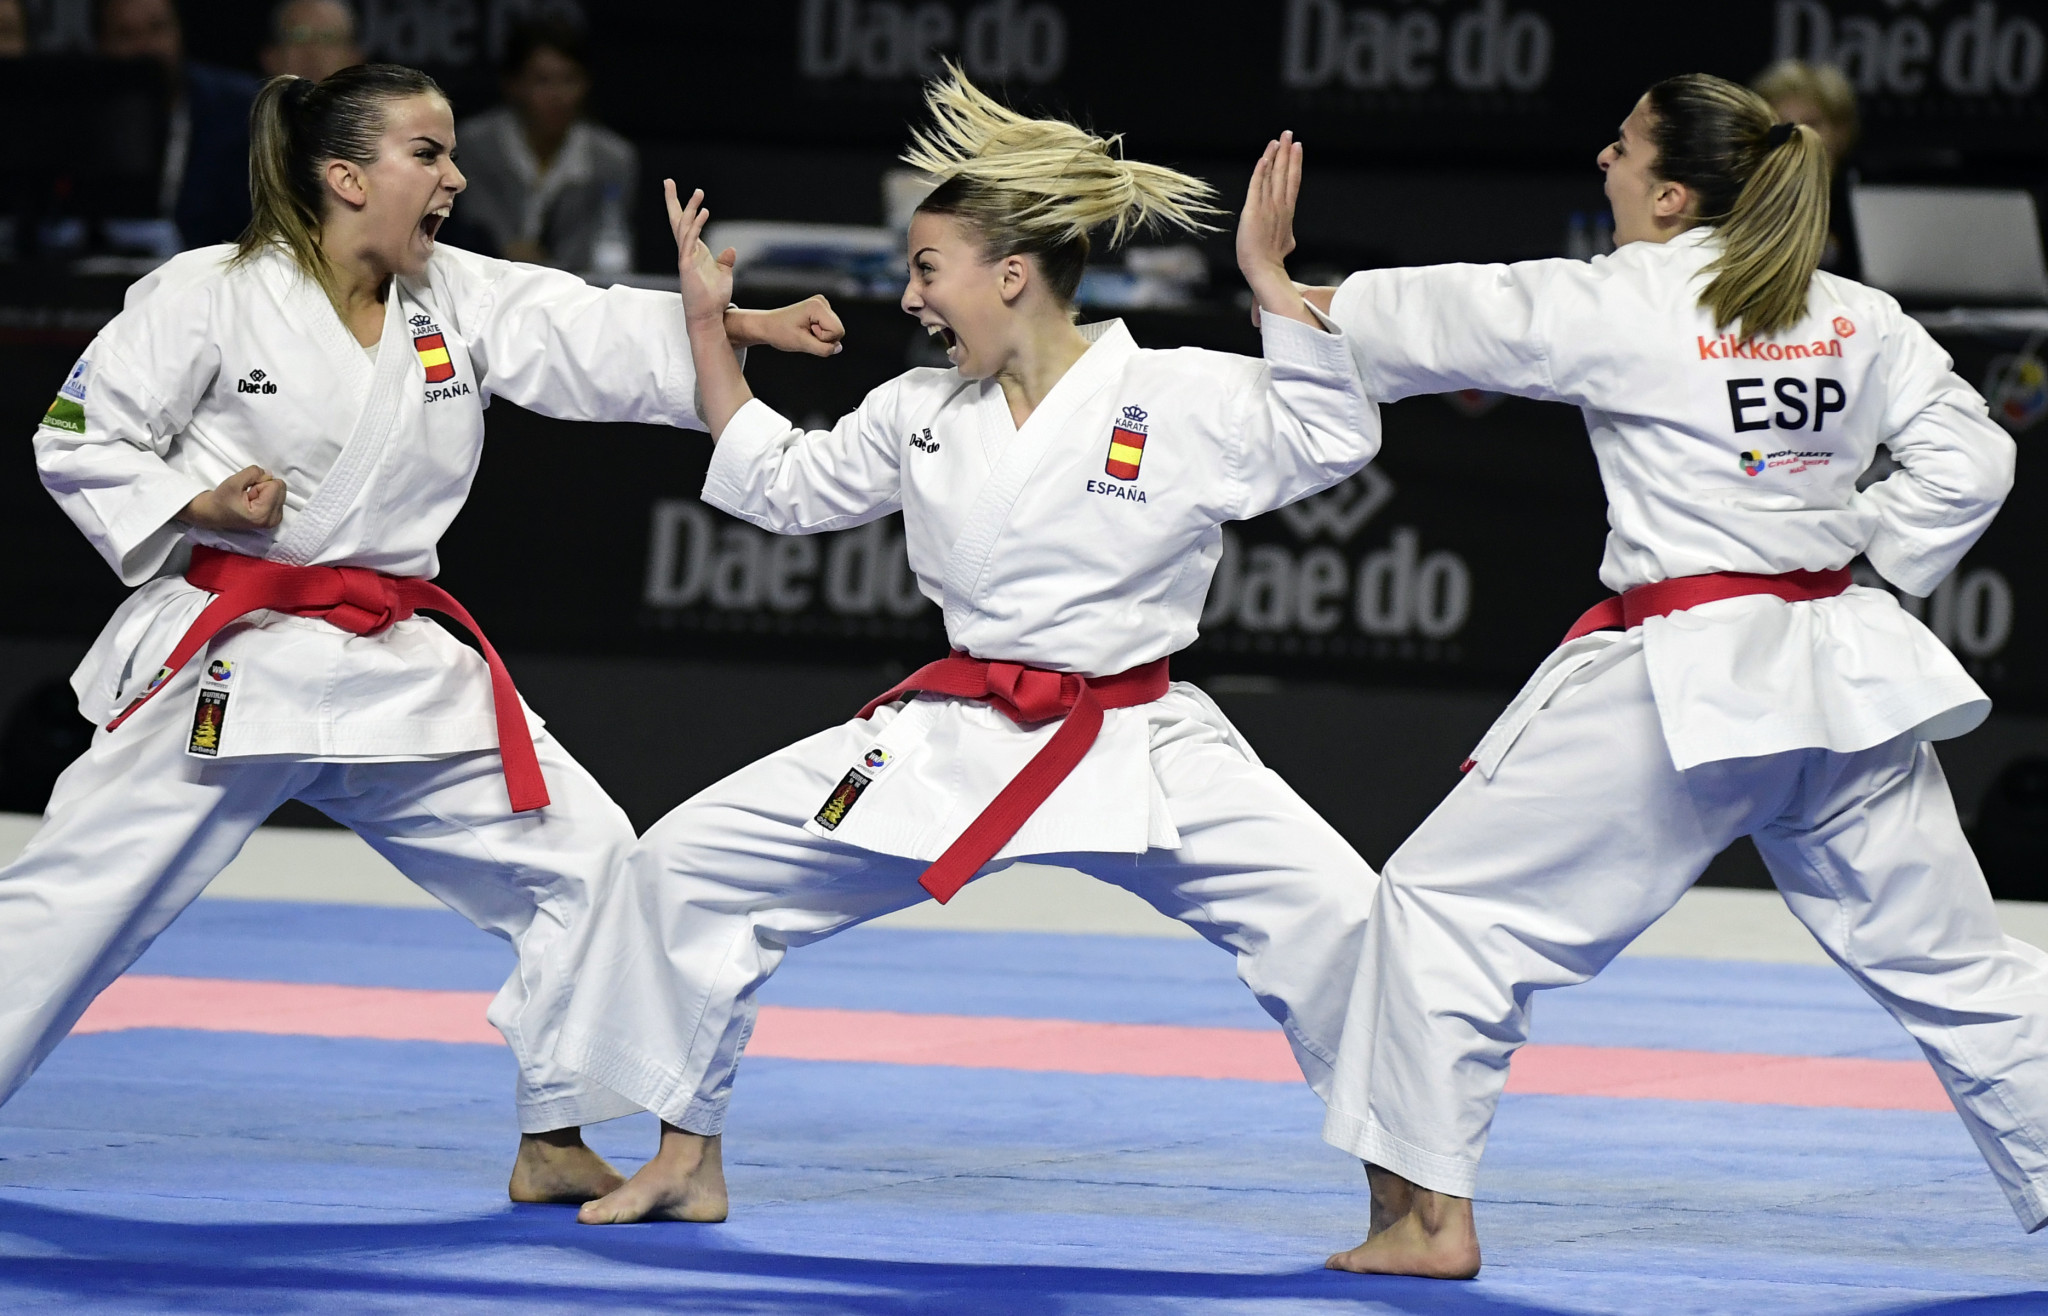 Karate is poised to make its Olympic debut at Tokyo 2020 ©Getty Images